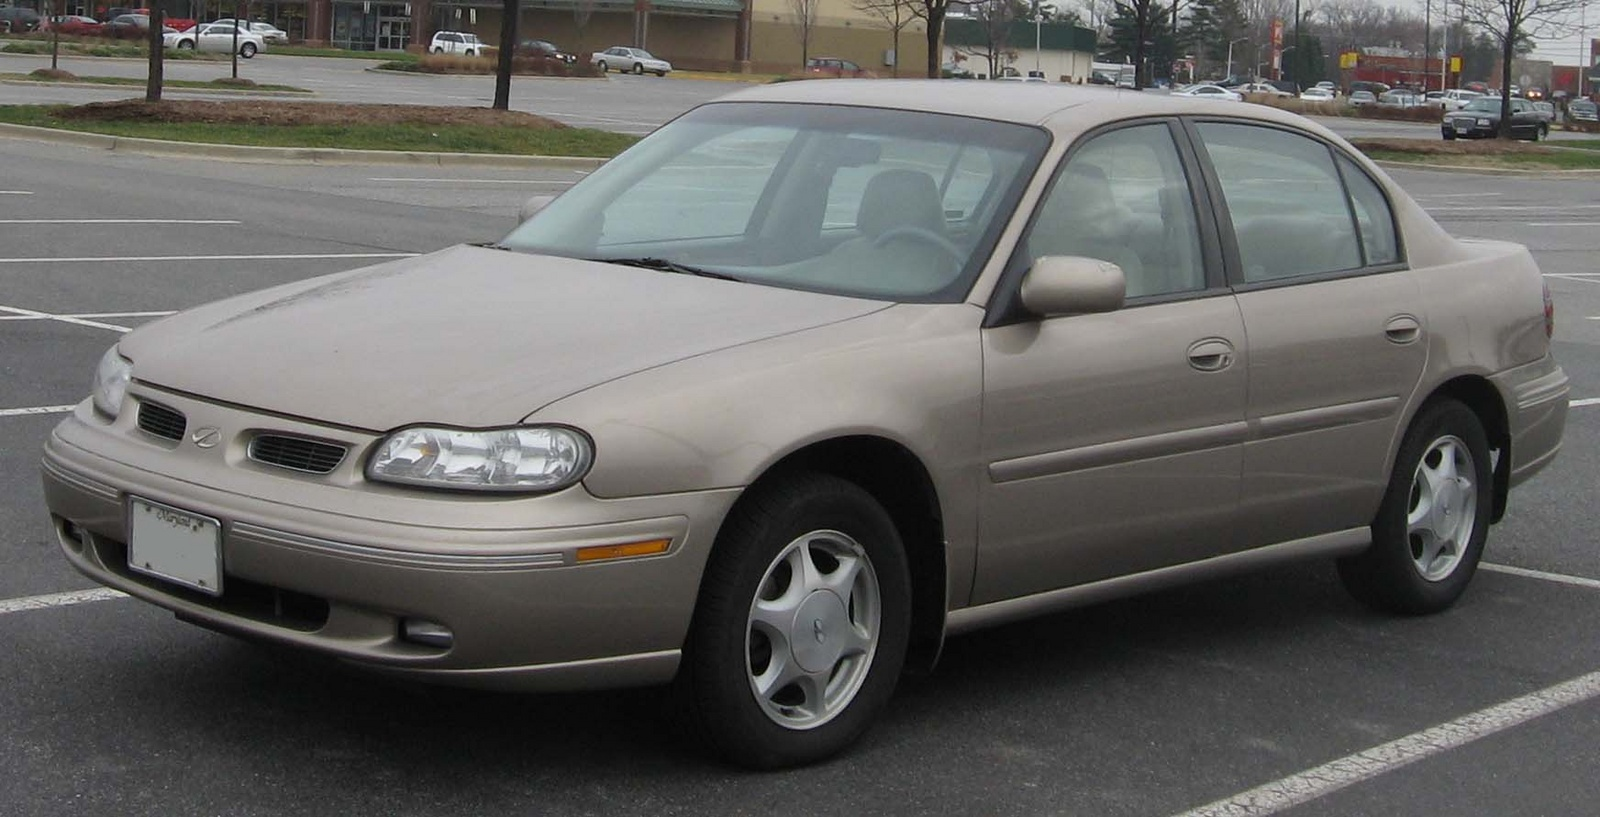 Picture of 1999 Oldsmobile Cutlass 4 Dr GLS Sedan, exterior